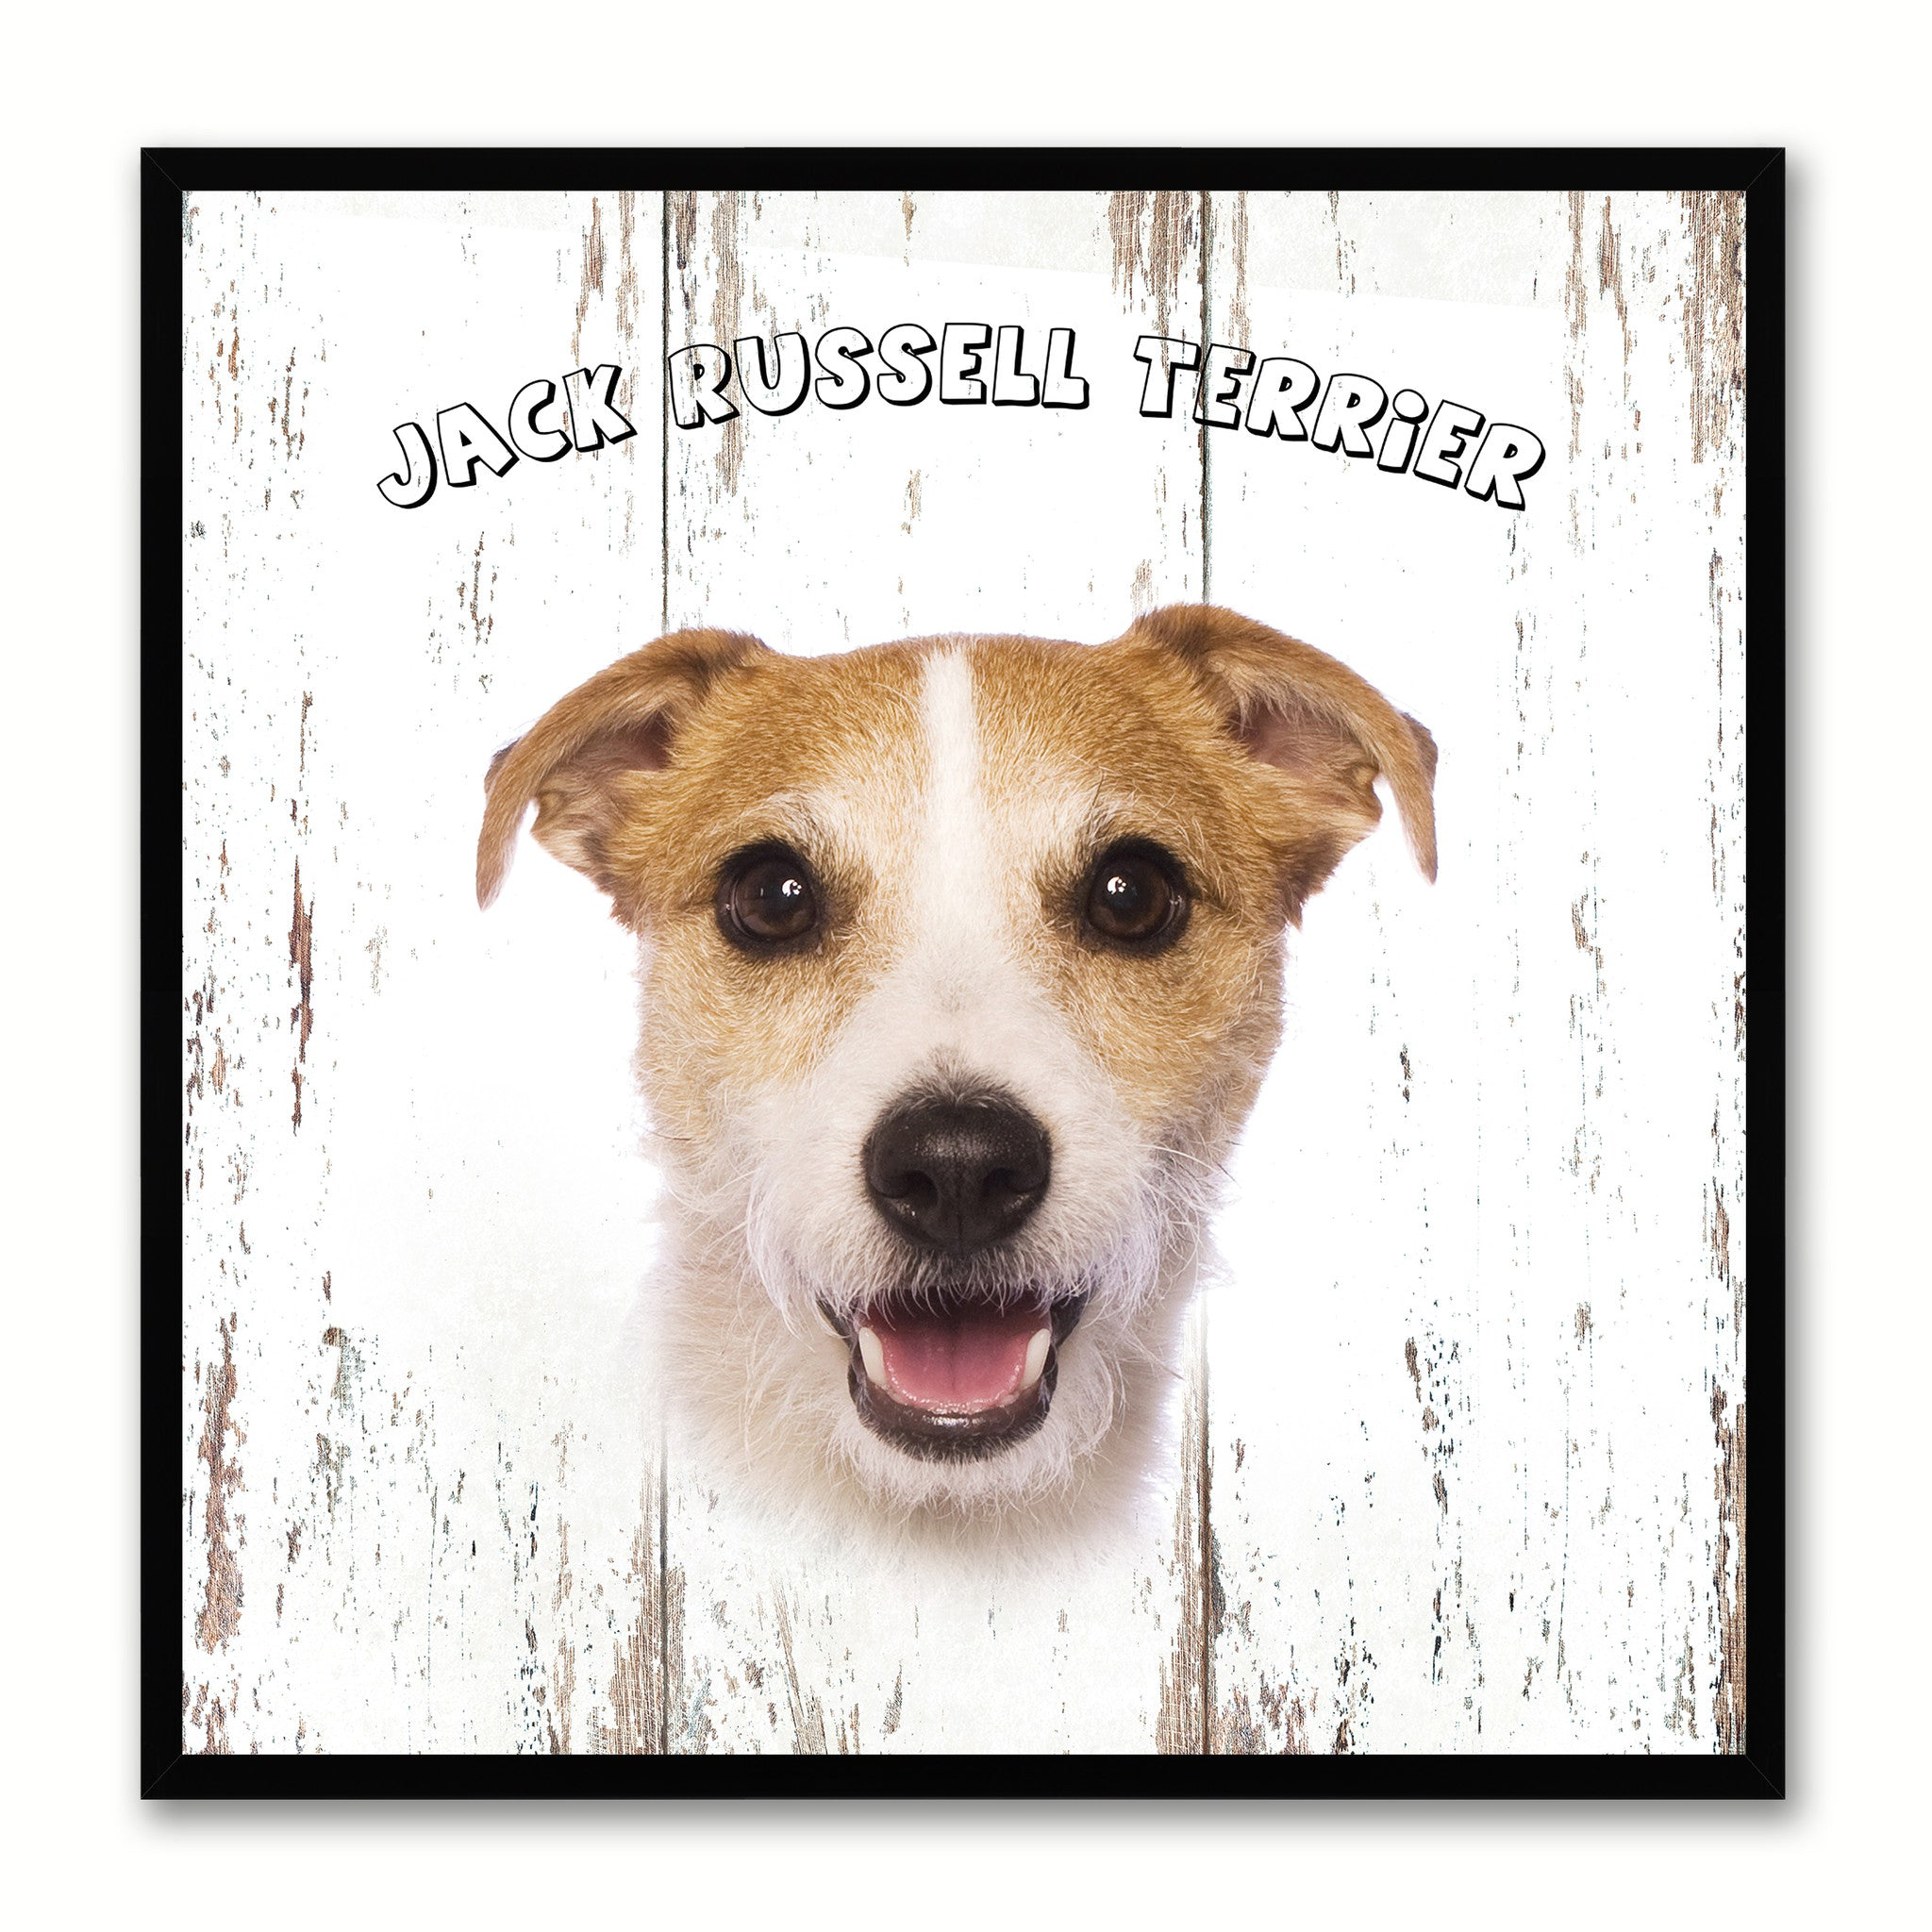 Jack Russell Terrier Dog Canvas Print Picture Frame Gift Home Decor Wall Art Decoration